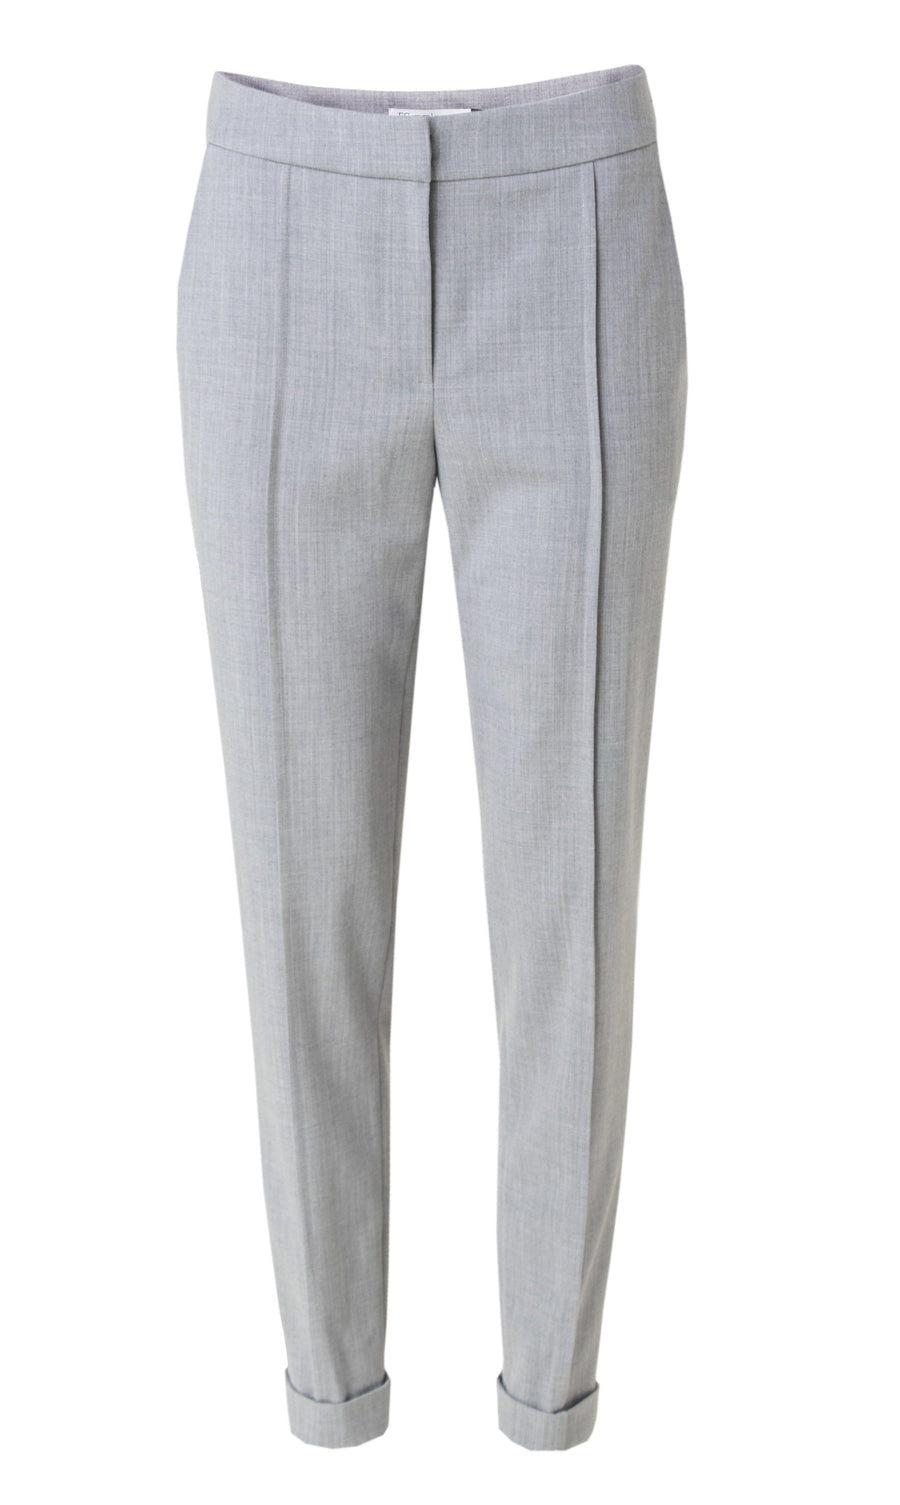 Grey stretch wool pants